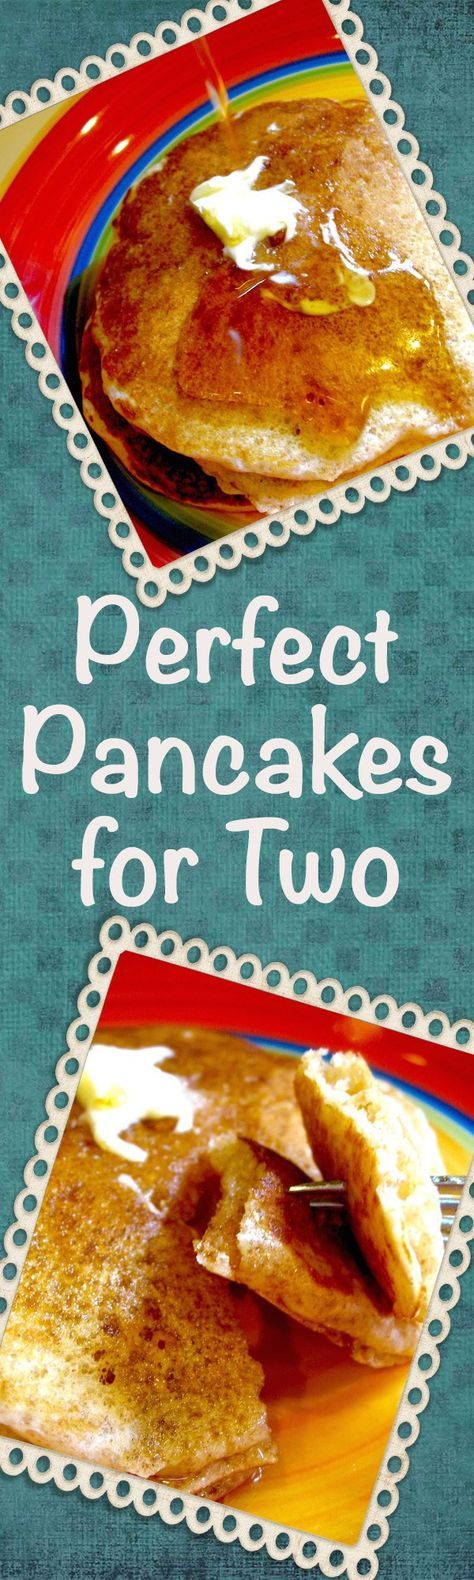 Pancakes for Two are light and fluffy, not cake-y or dry. This recipe for tender pancakes is easy to make and fabulous with any of your favorite toppings.   delishable.net